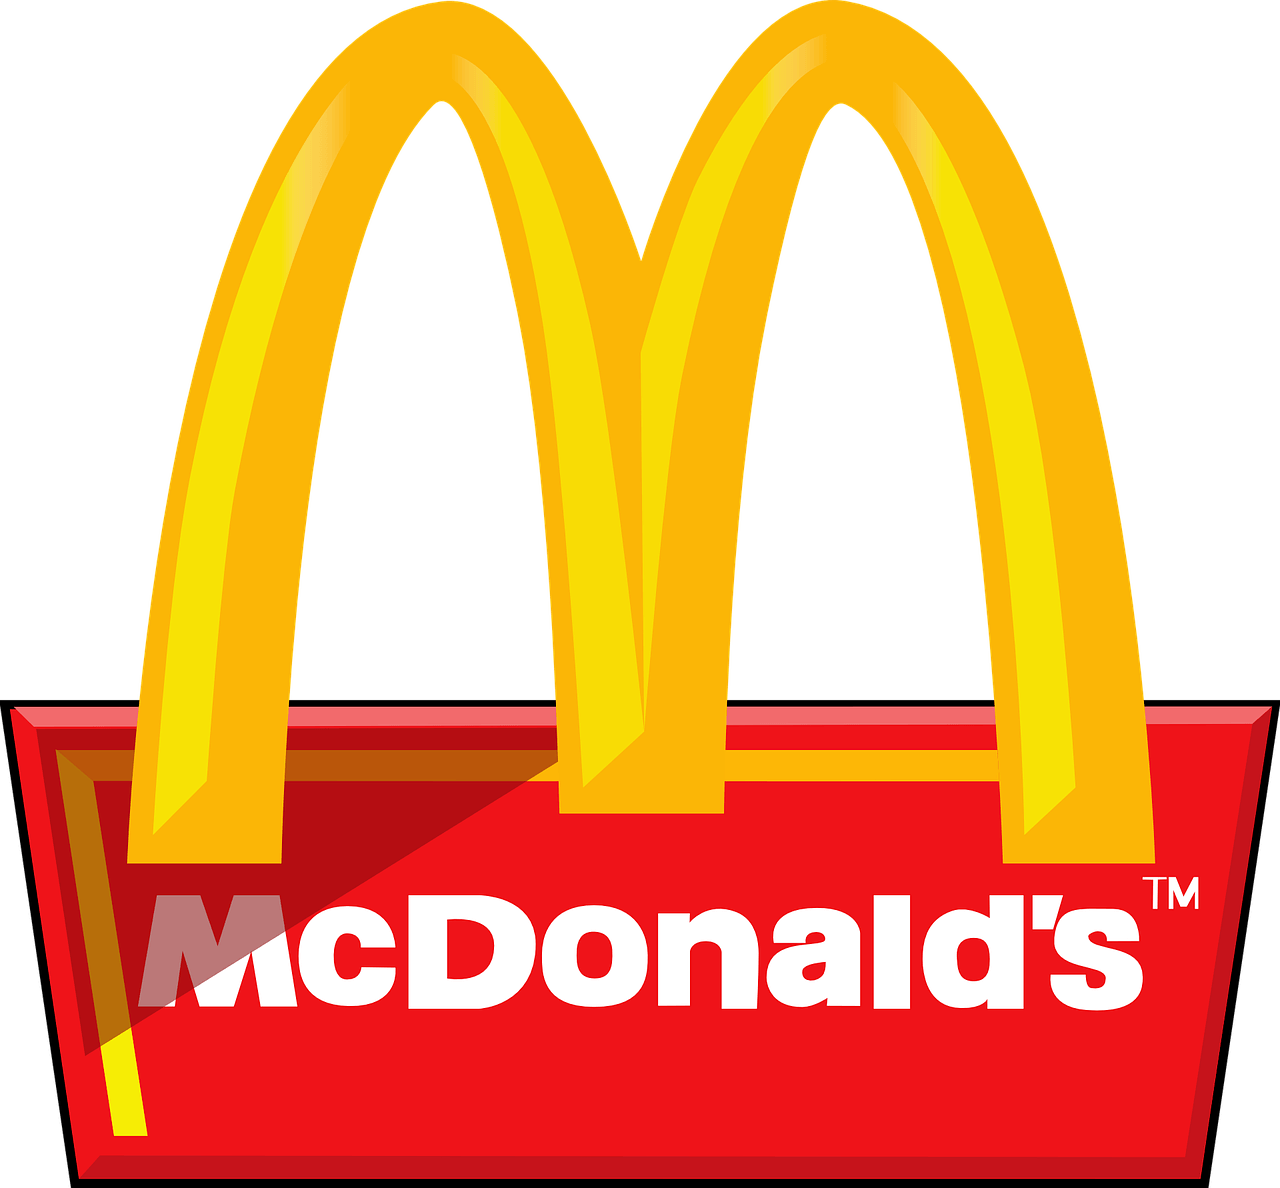 Franchise Mcdonalds Kosten